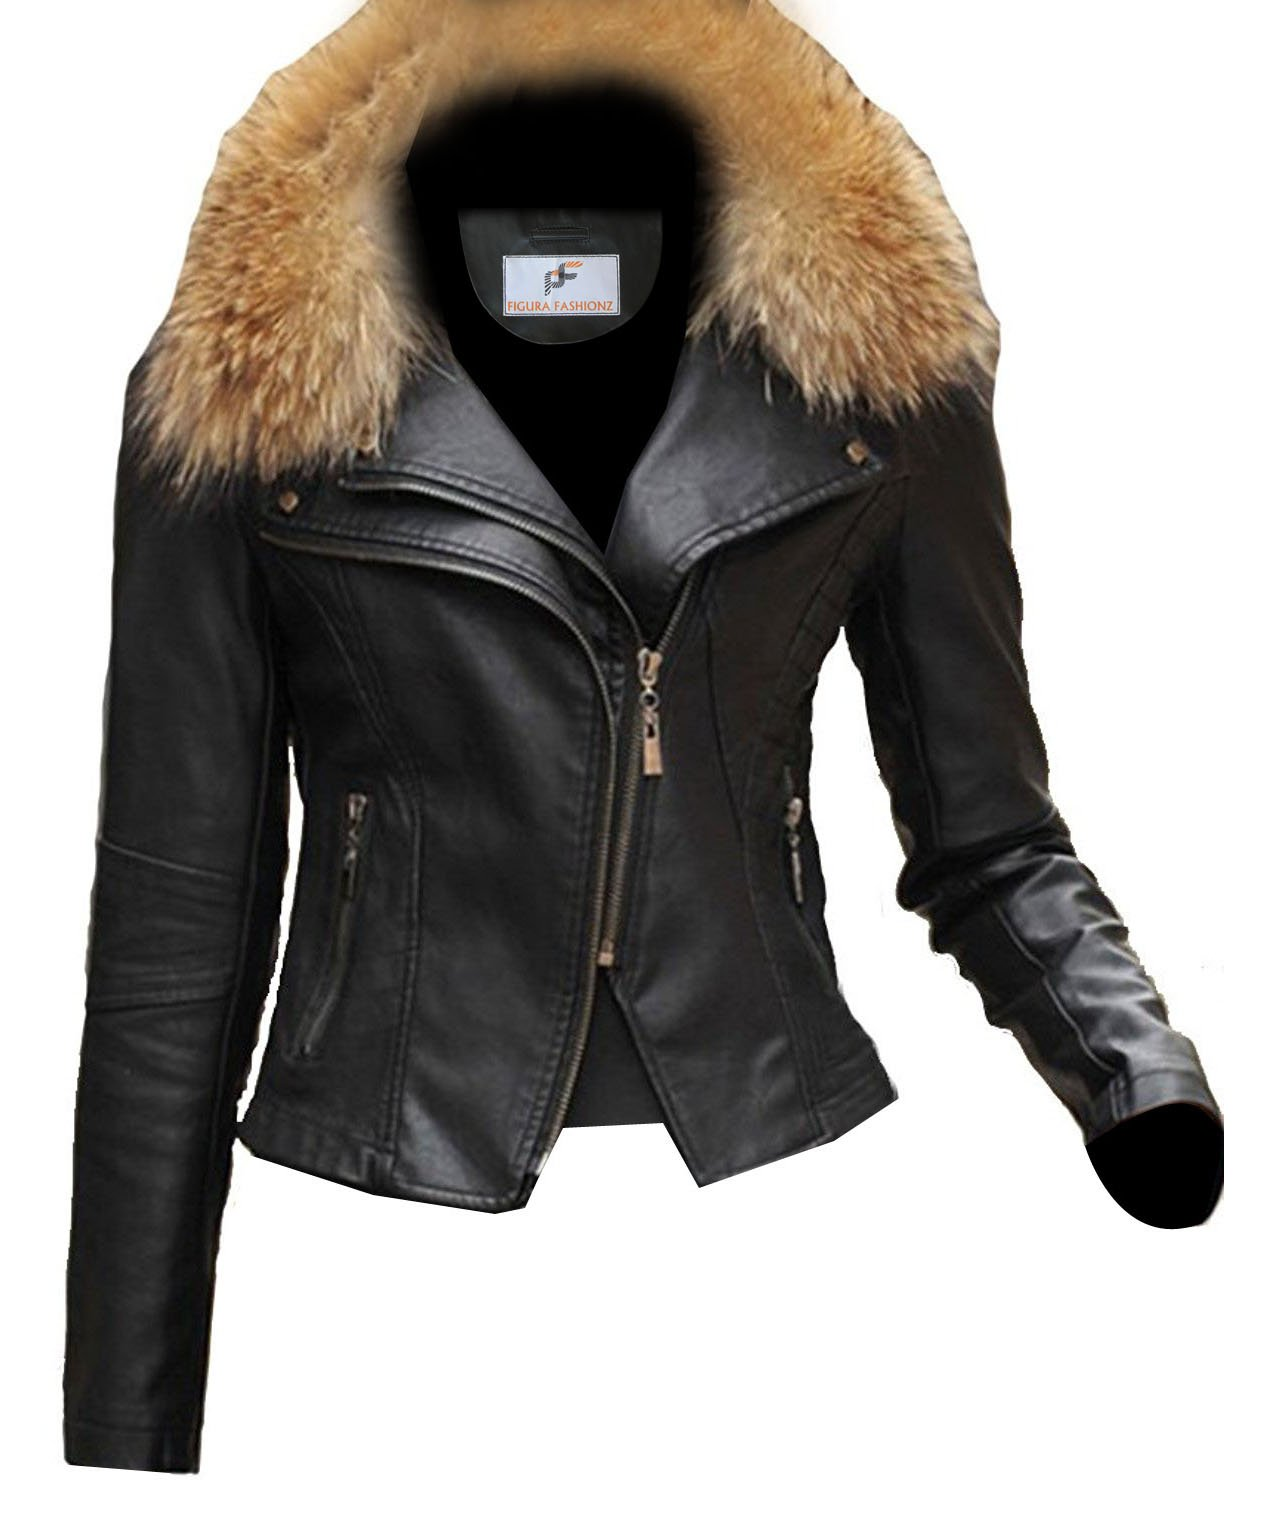 Figura Fashionz Short Body Furry Lambskin Leather Jacket for Women by Figura Fashionz